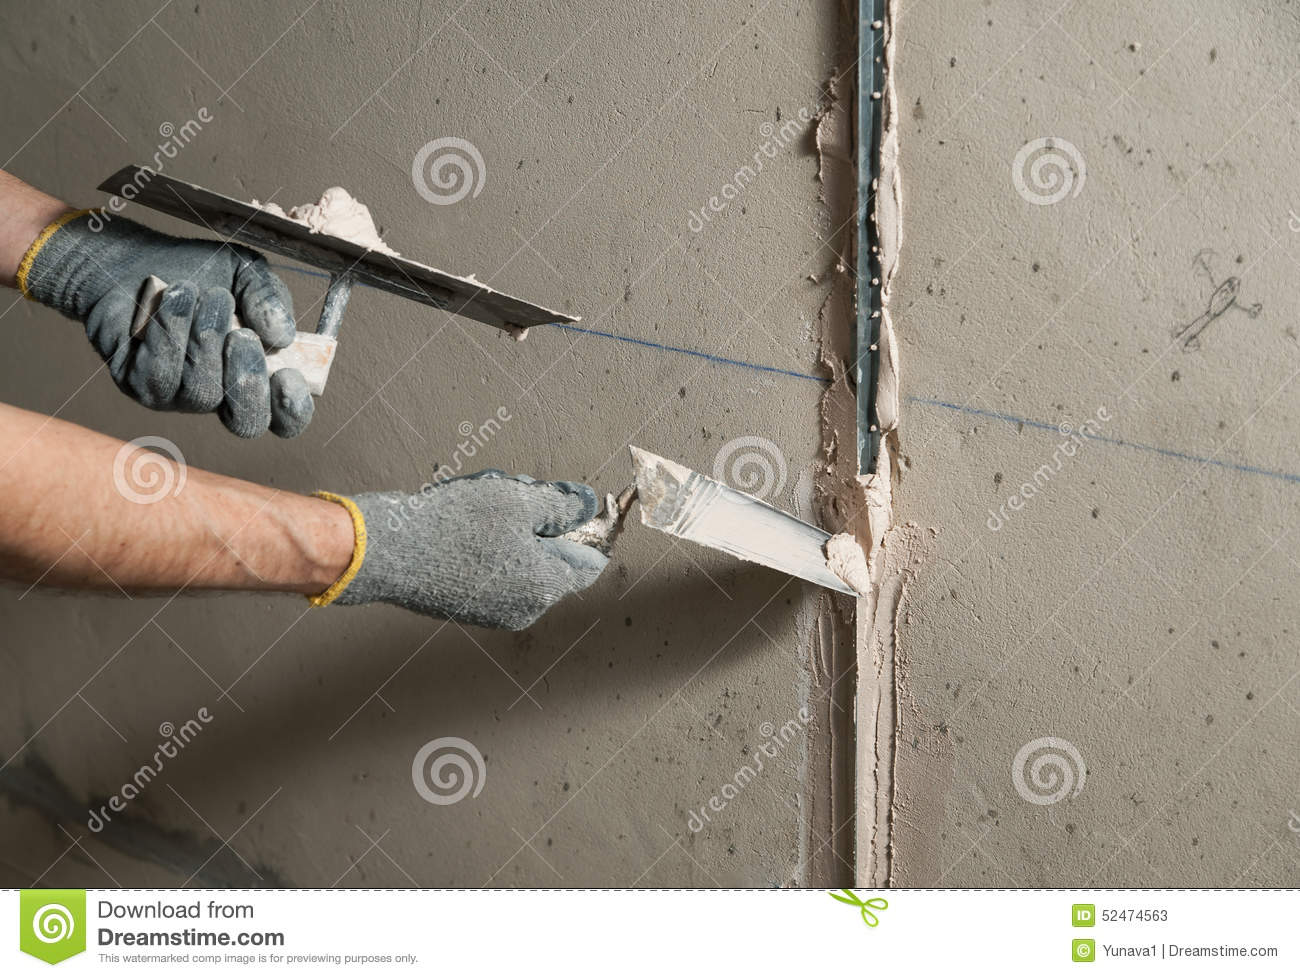 How to align the walls in the apartment 90